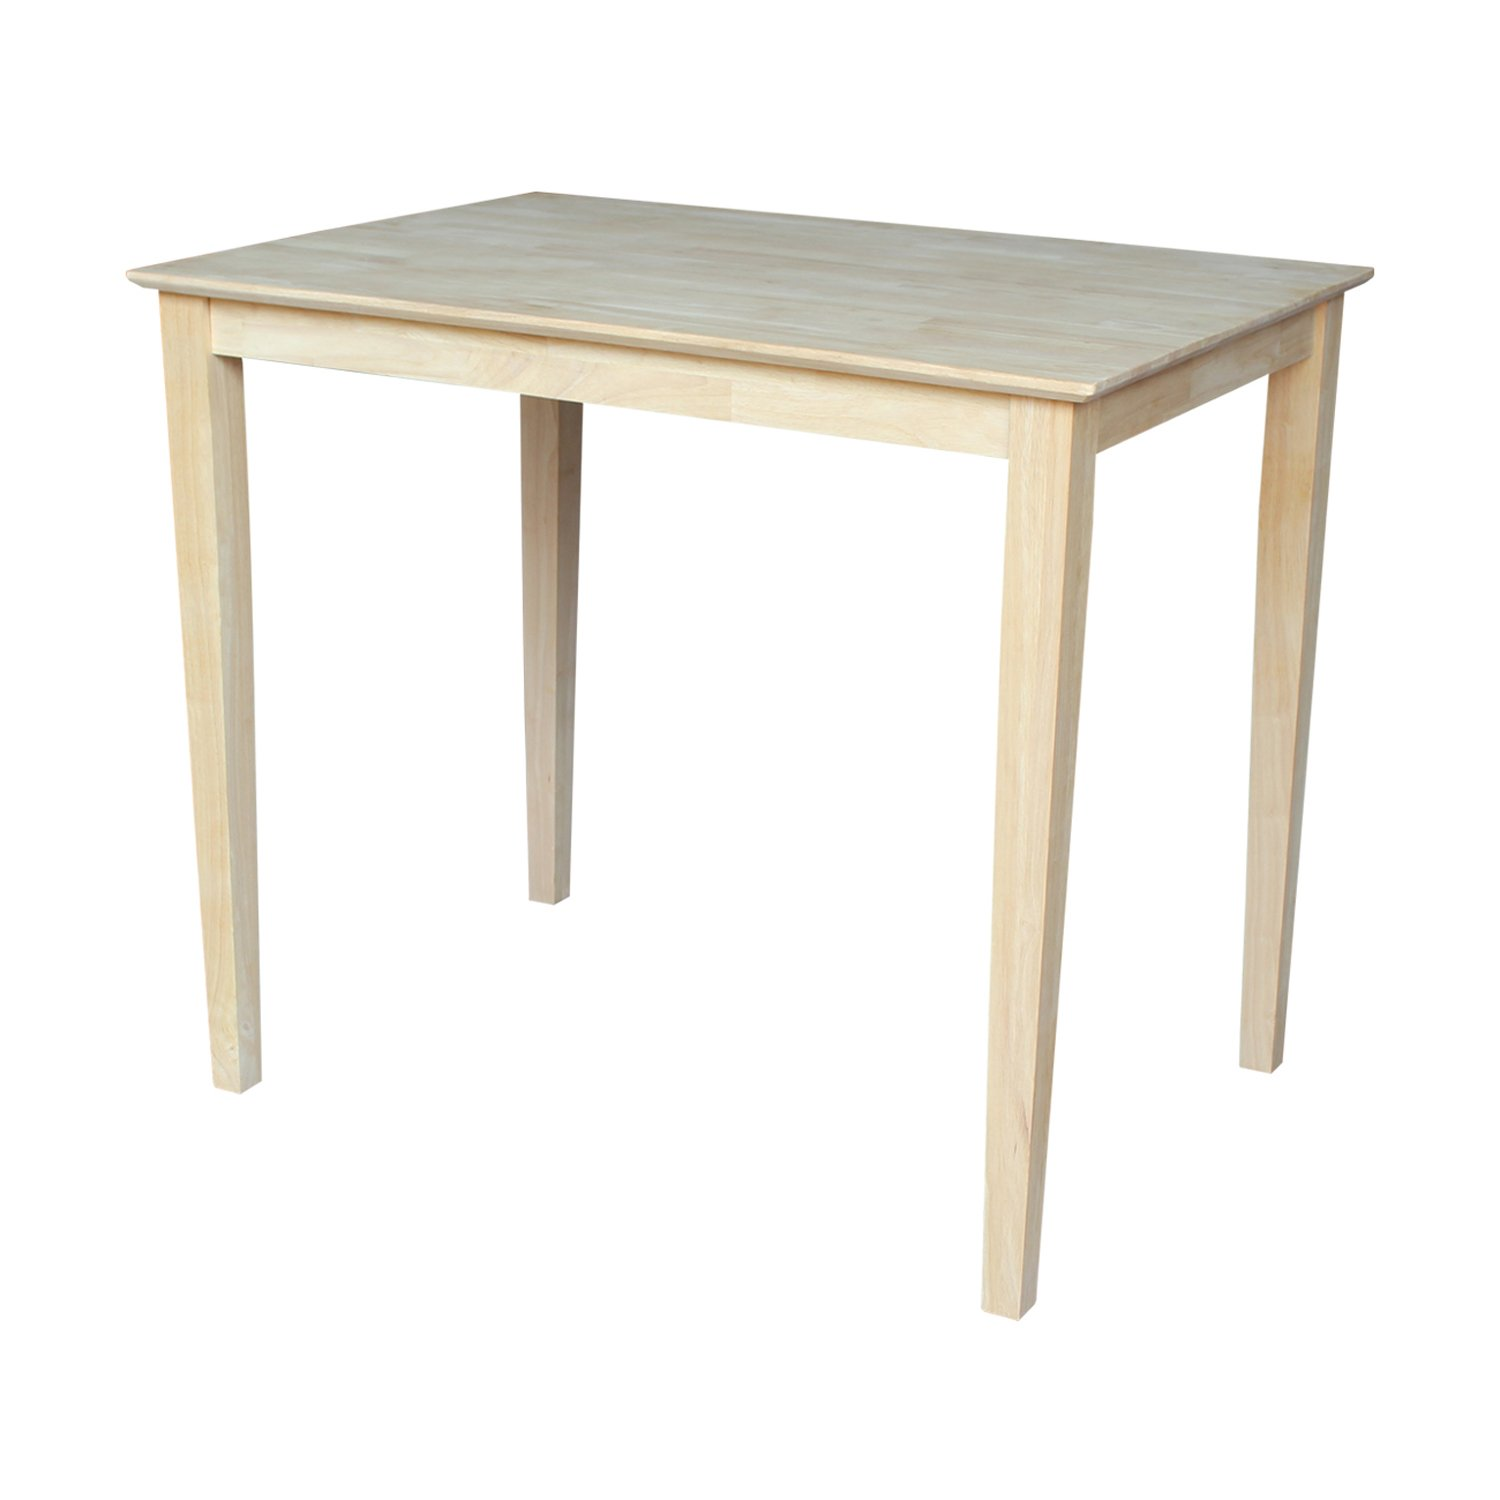 International Concepts Solid Wood Top Table with Shaker Legs, Counter Height